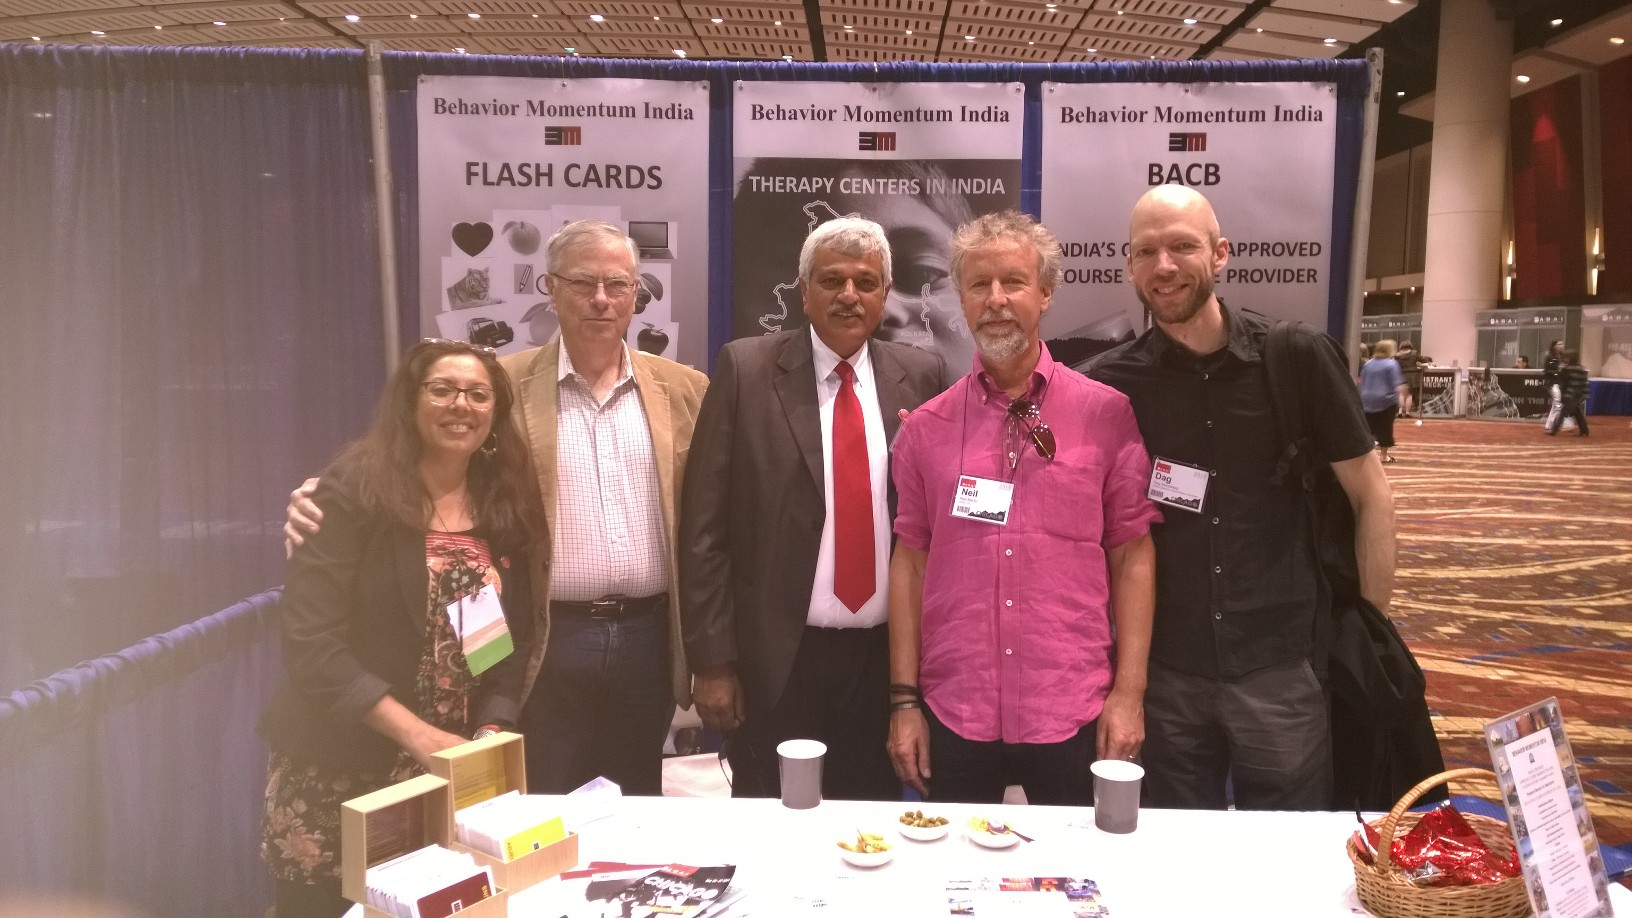 BMI Booth ABAI 2014 Chicago with Mike, Neil